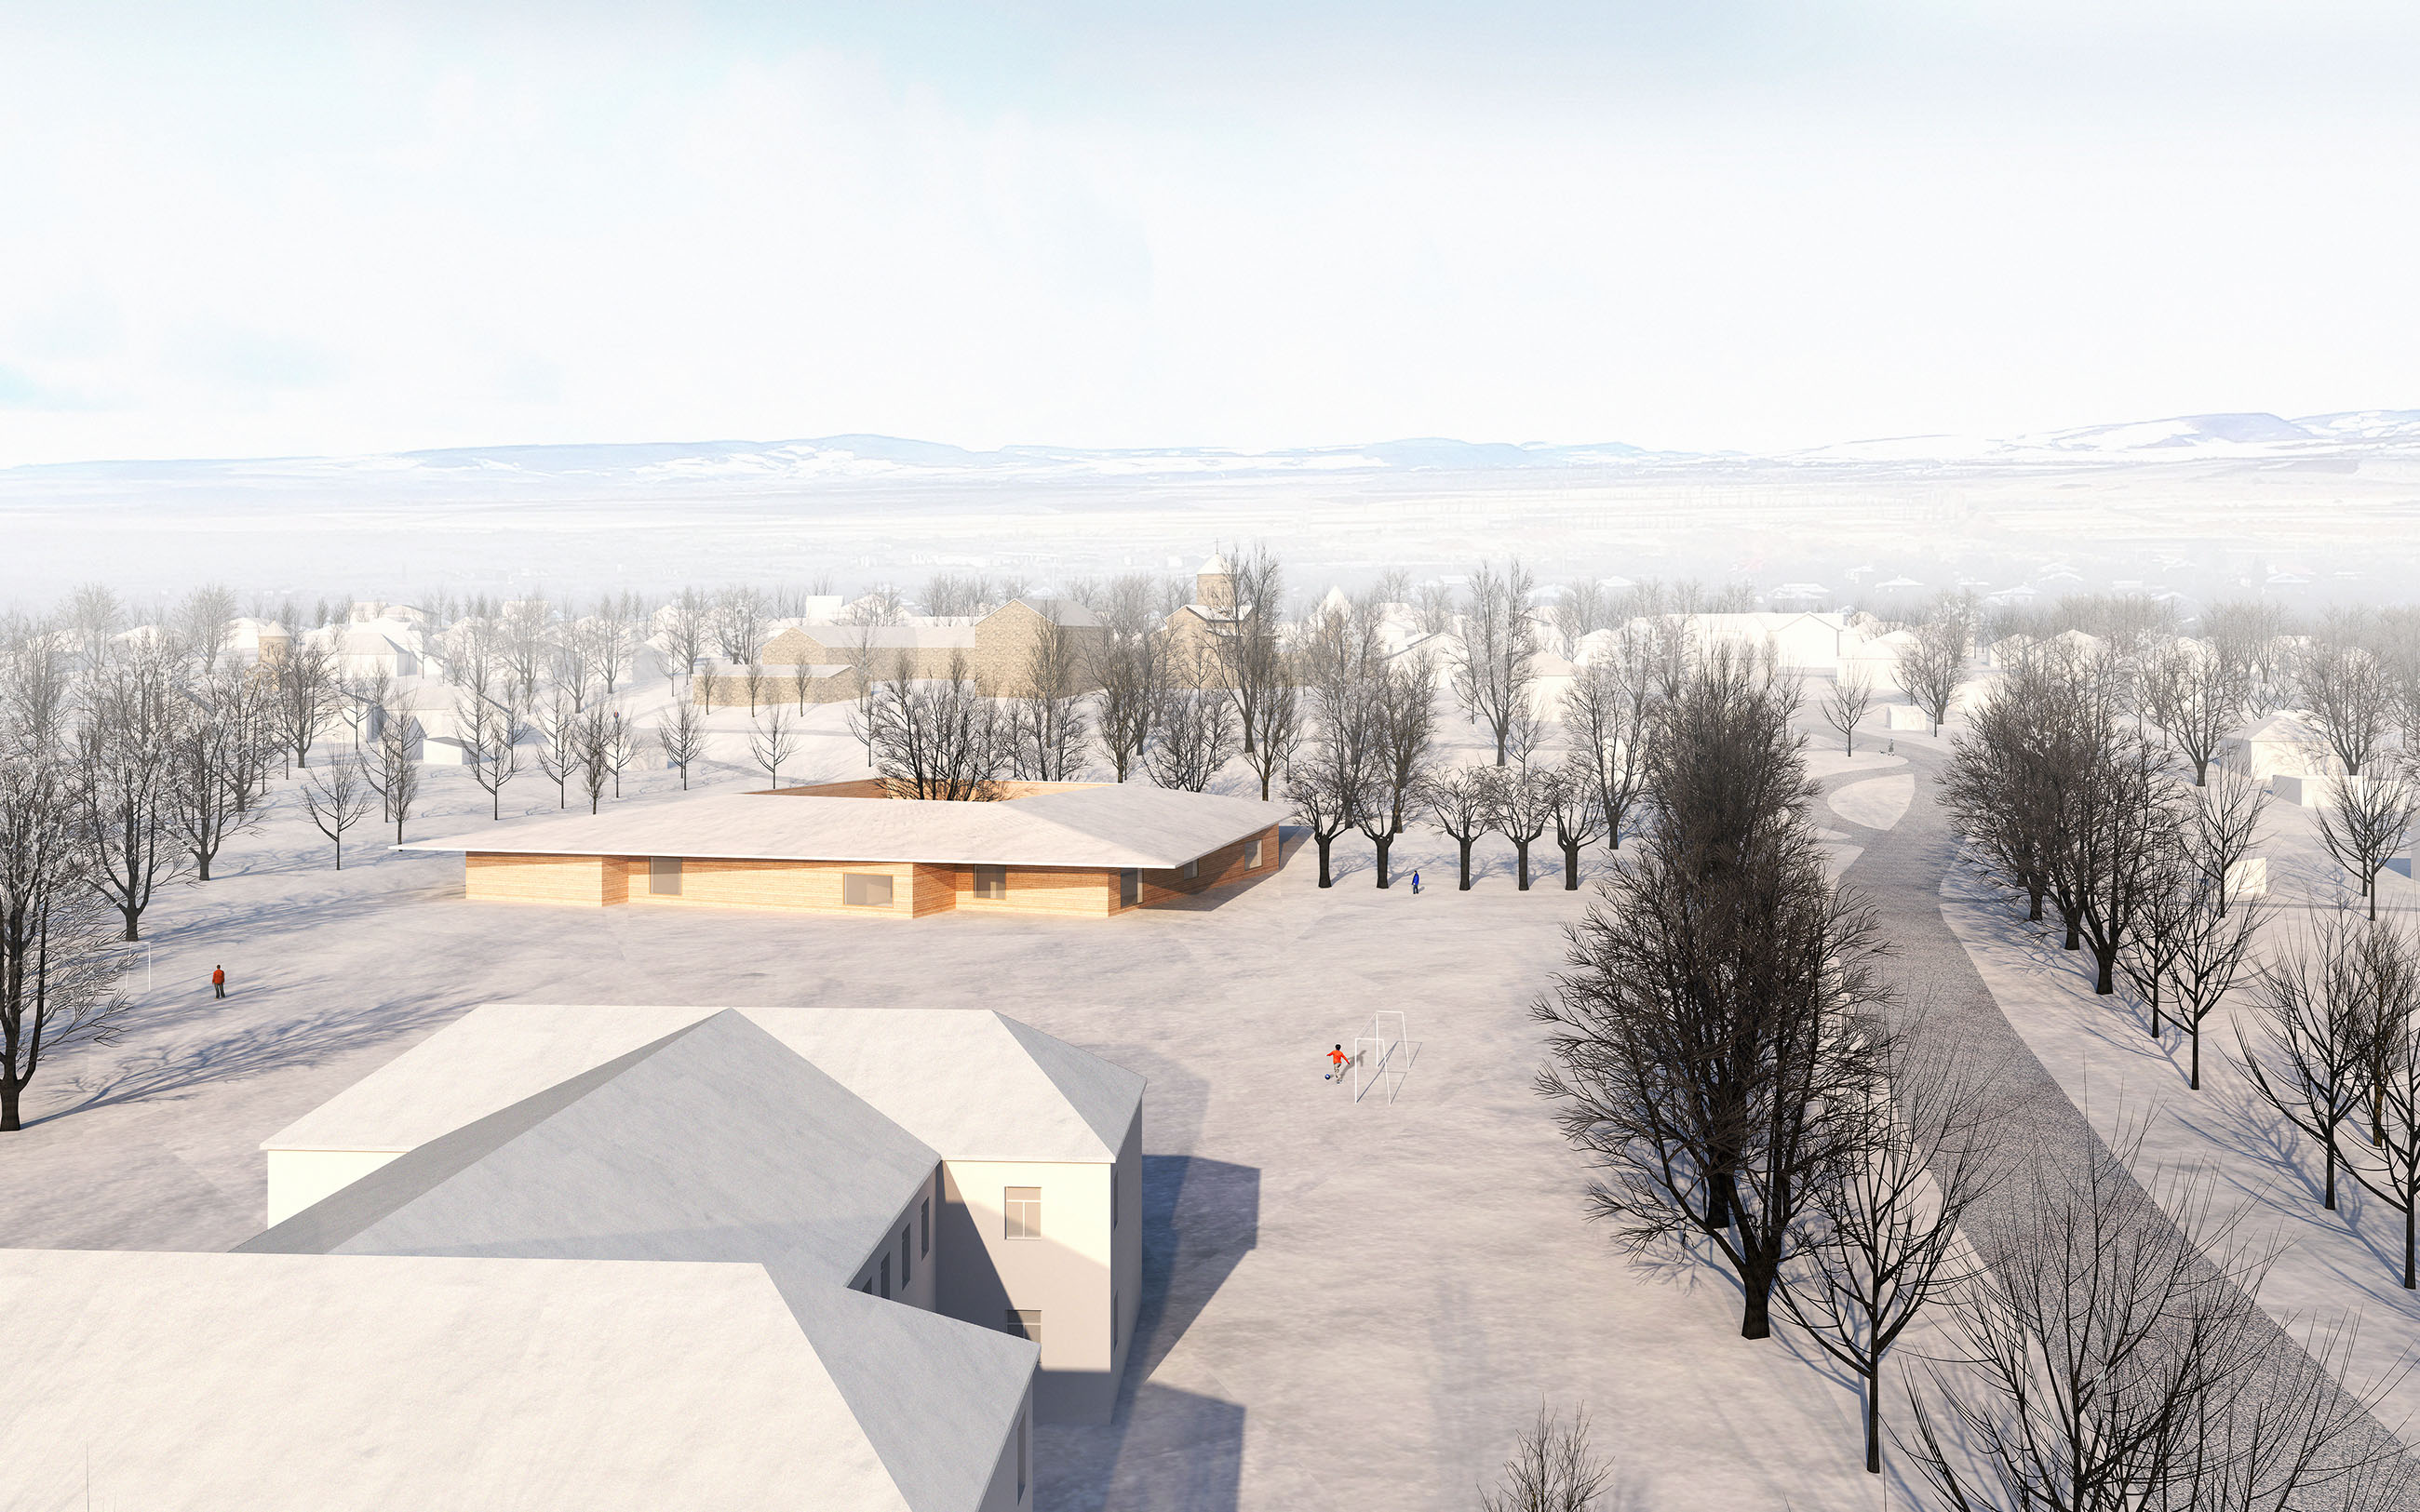 8_About Architecture_Nikozi 2nd prize